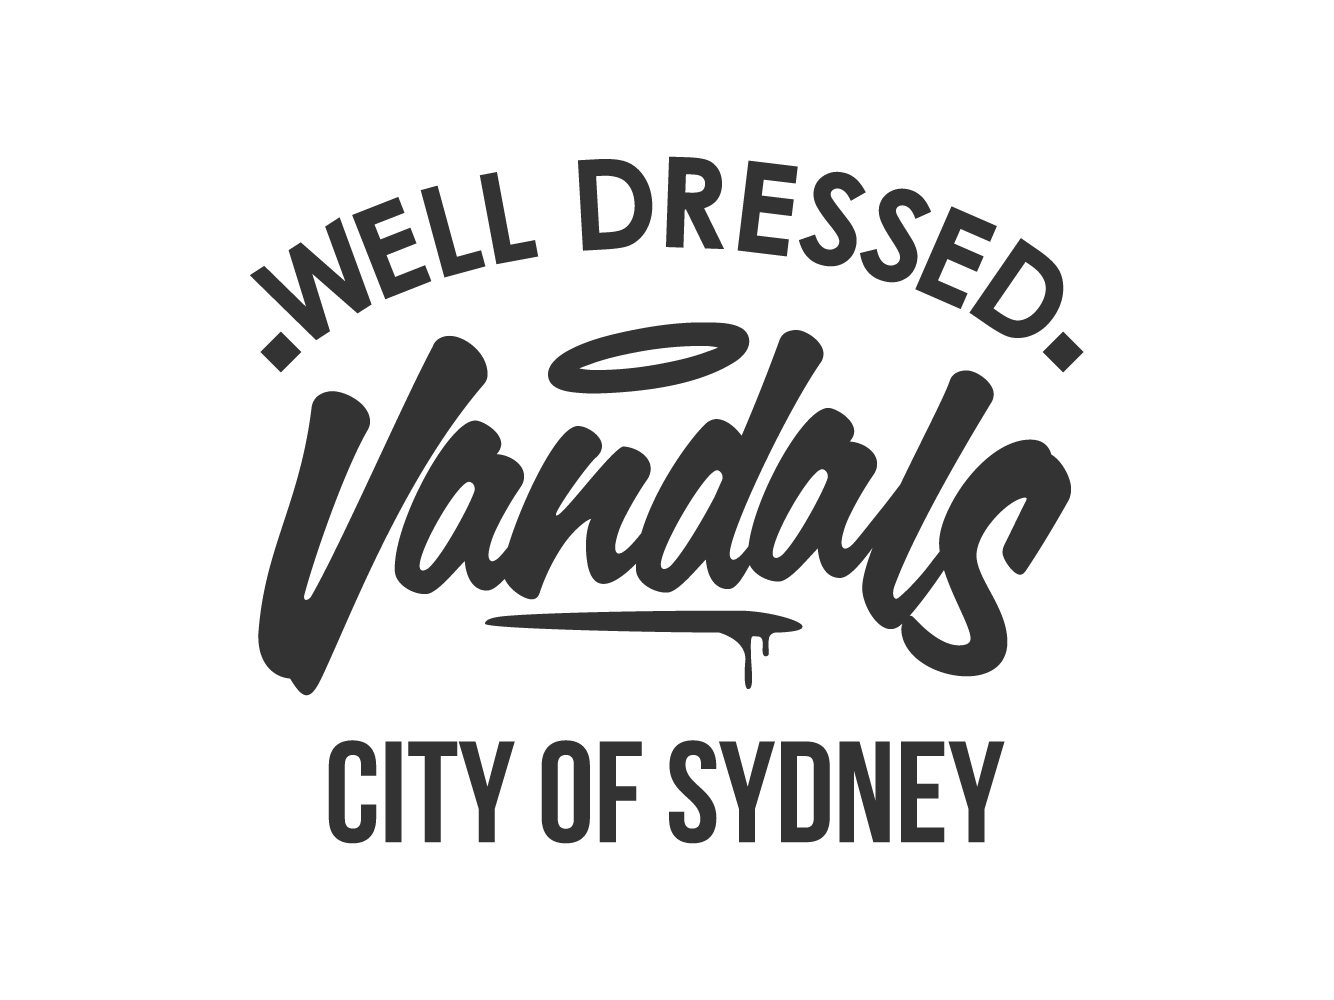 Well Dressed Vandals